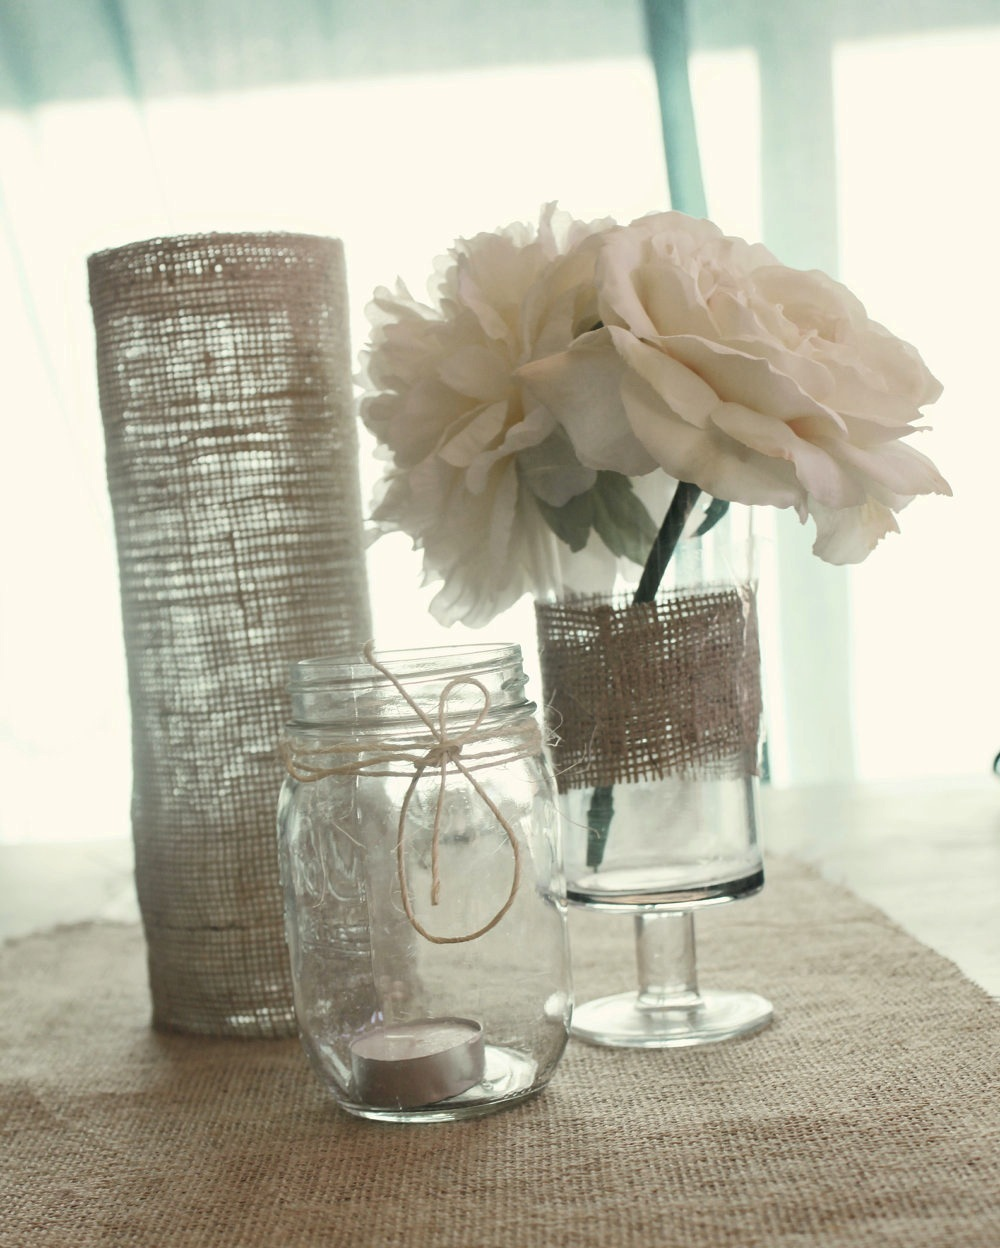 Elegant wedding centerpieces - Simple Elegant Wedding Reception Centerpieces Burlap Wrapped Vases Mason Jars